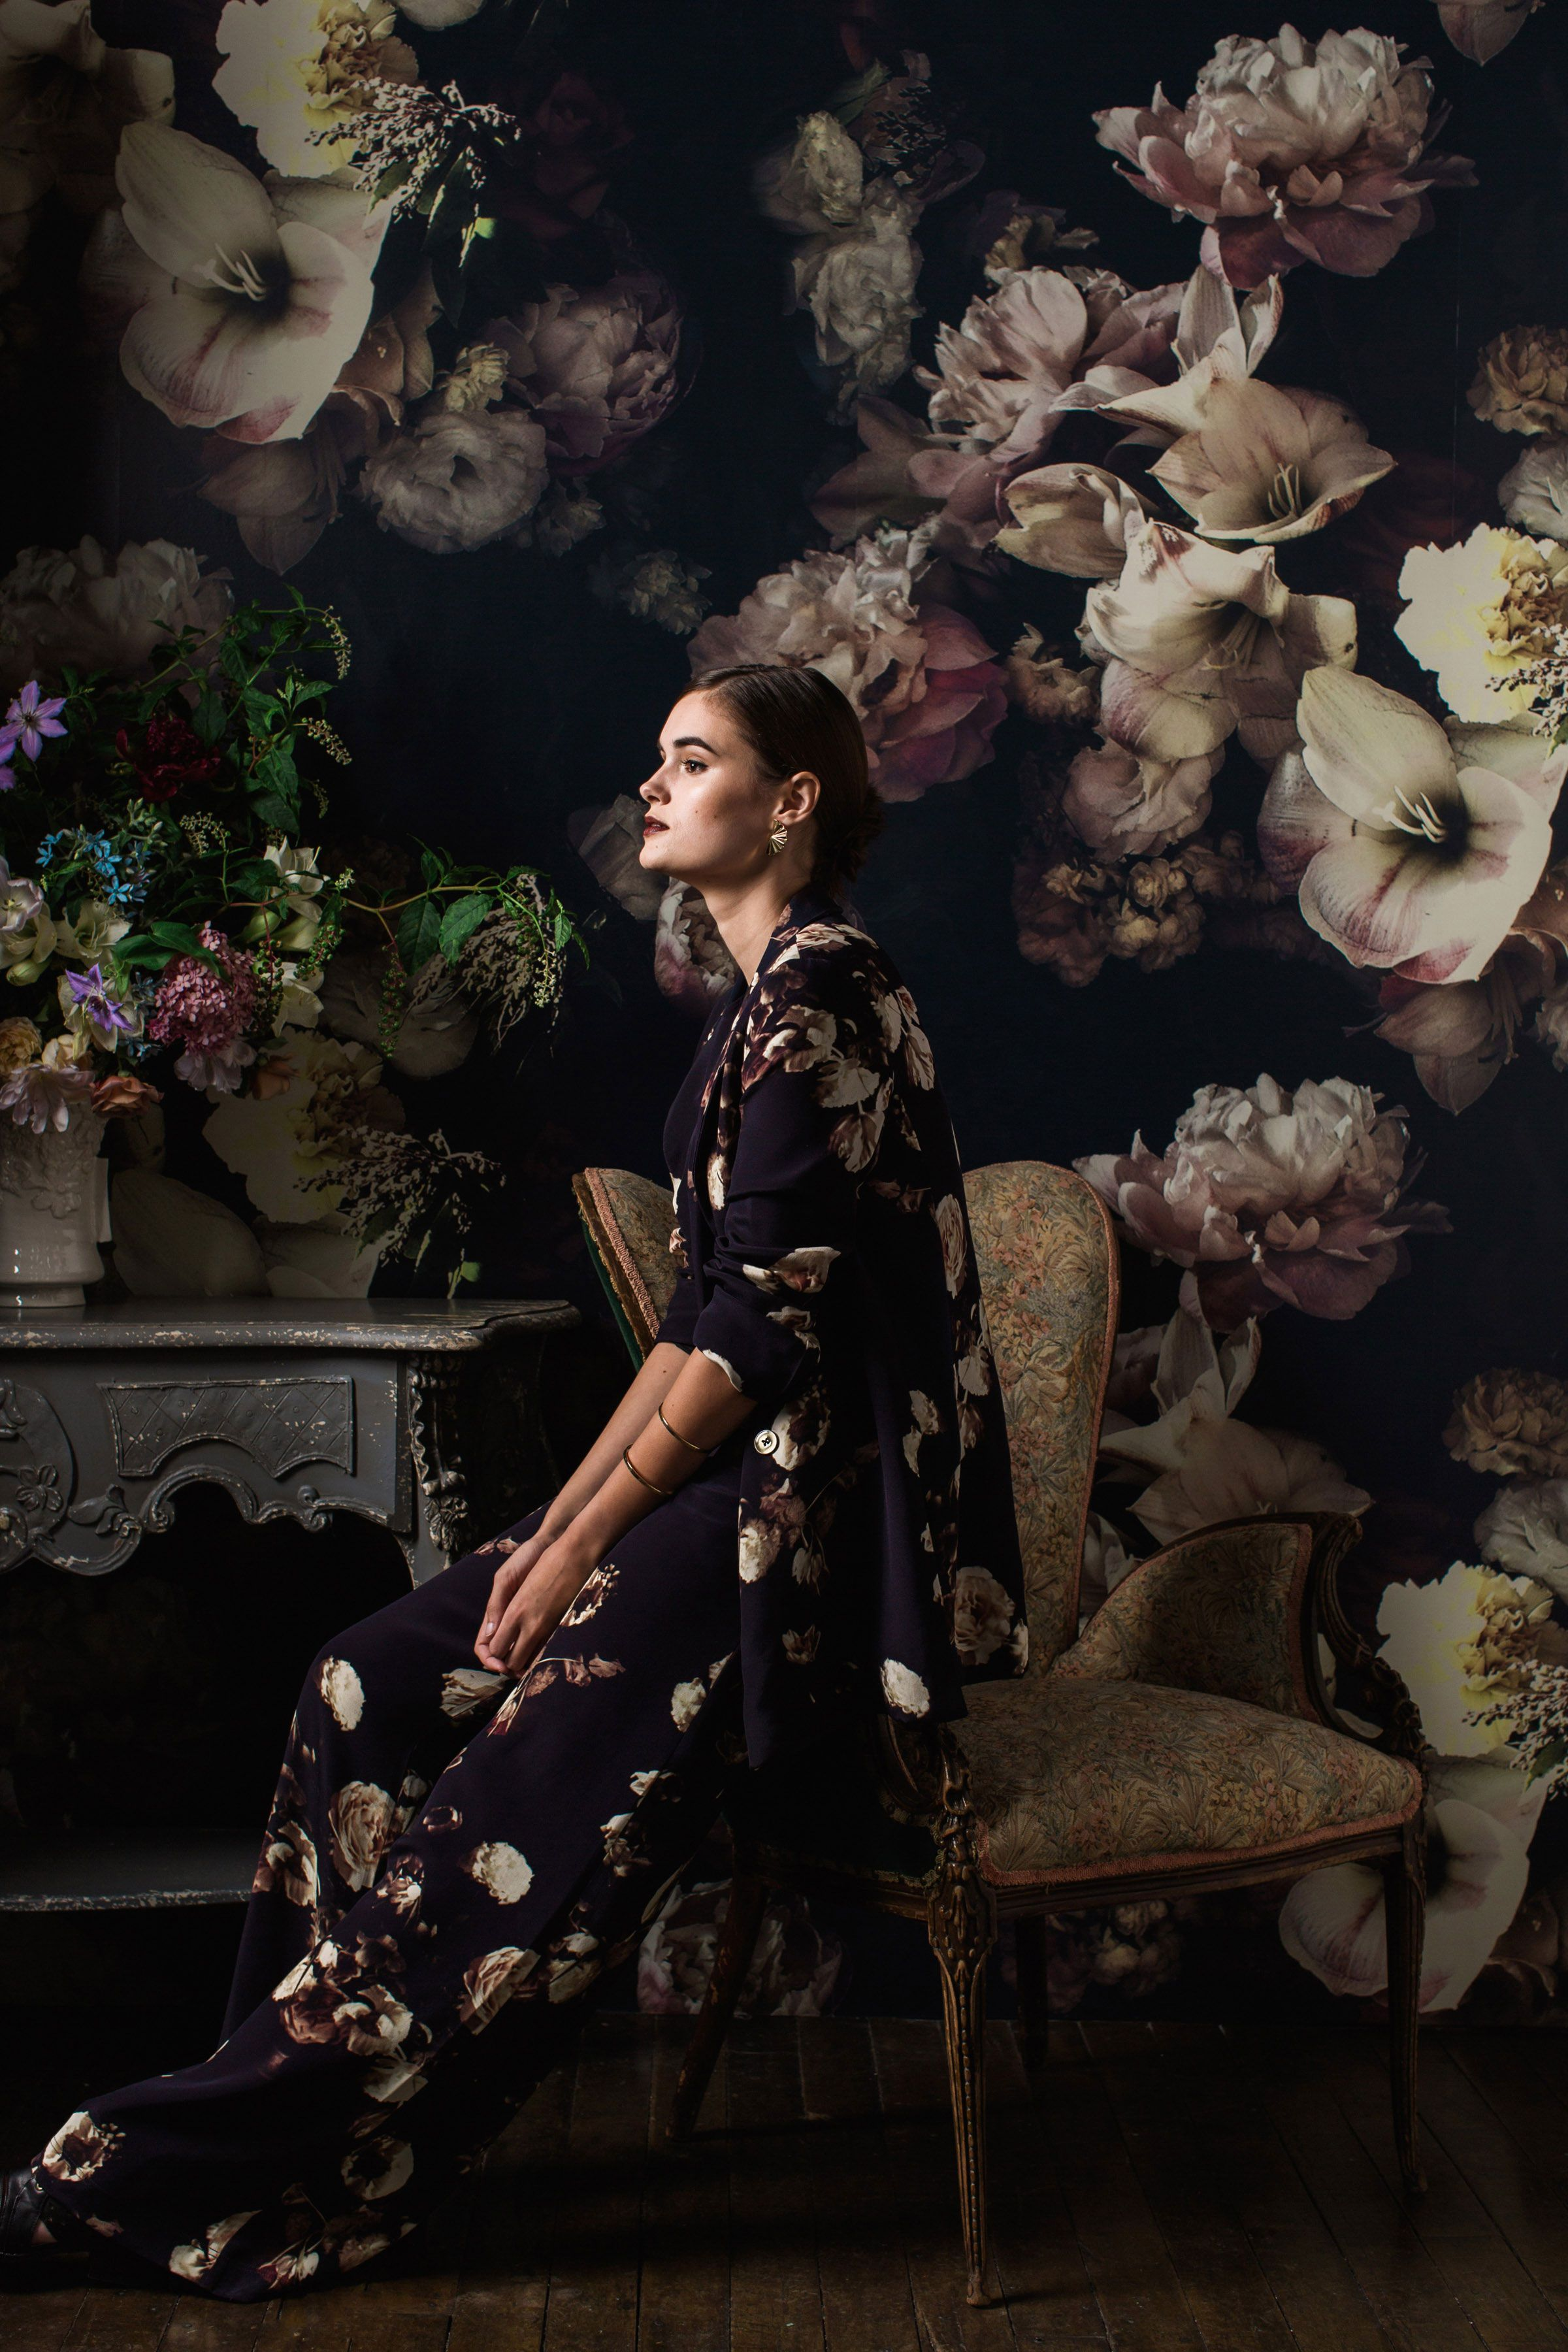 Black floral print wallpaper dark floral wallpaper by ellie cashman - Lately They Everywhere Huge Darkly Dramatic Floral Wallpapers That Draw You In With Their Lusciousness And Sheer Scale